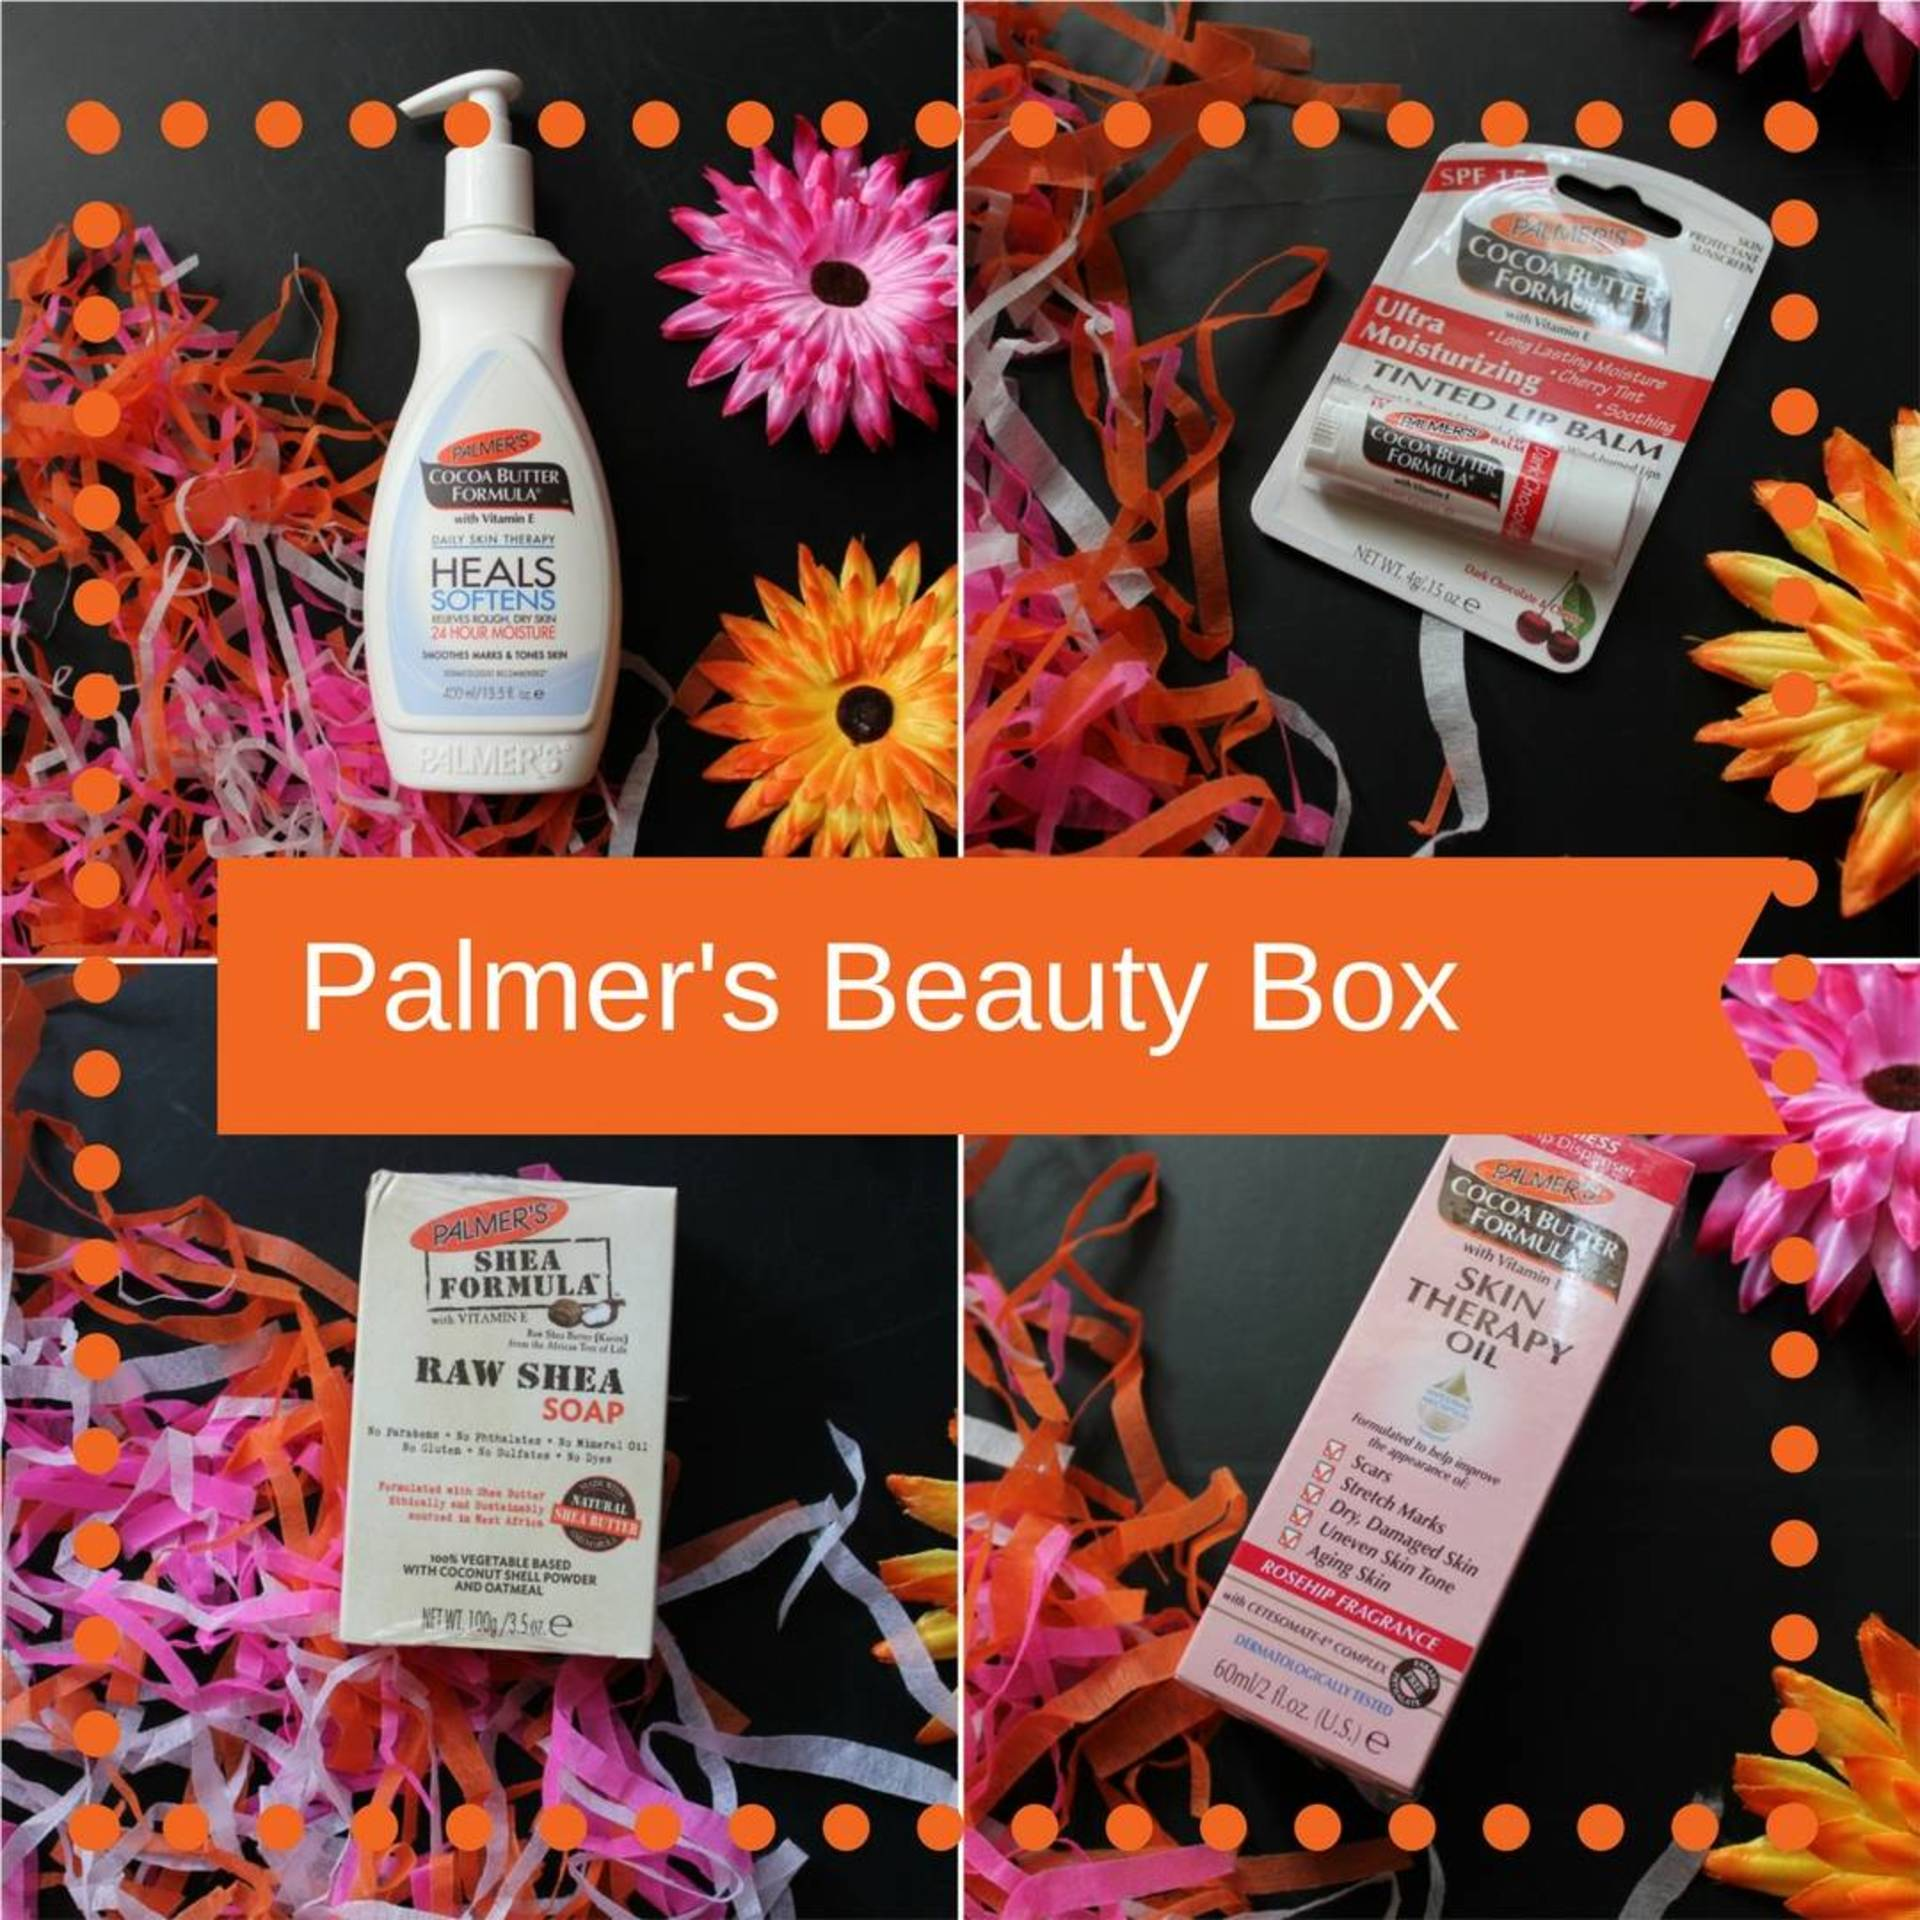 Palmers Beauty Box image